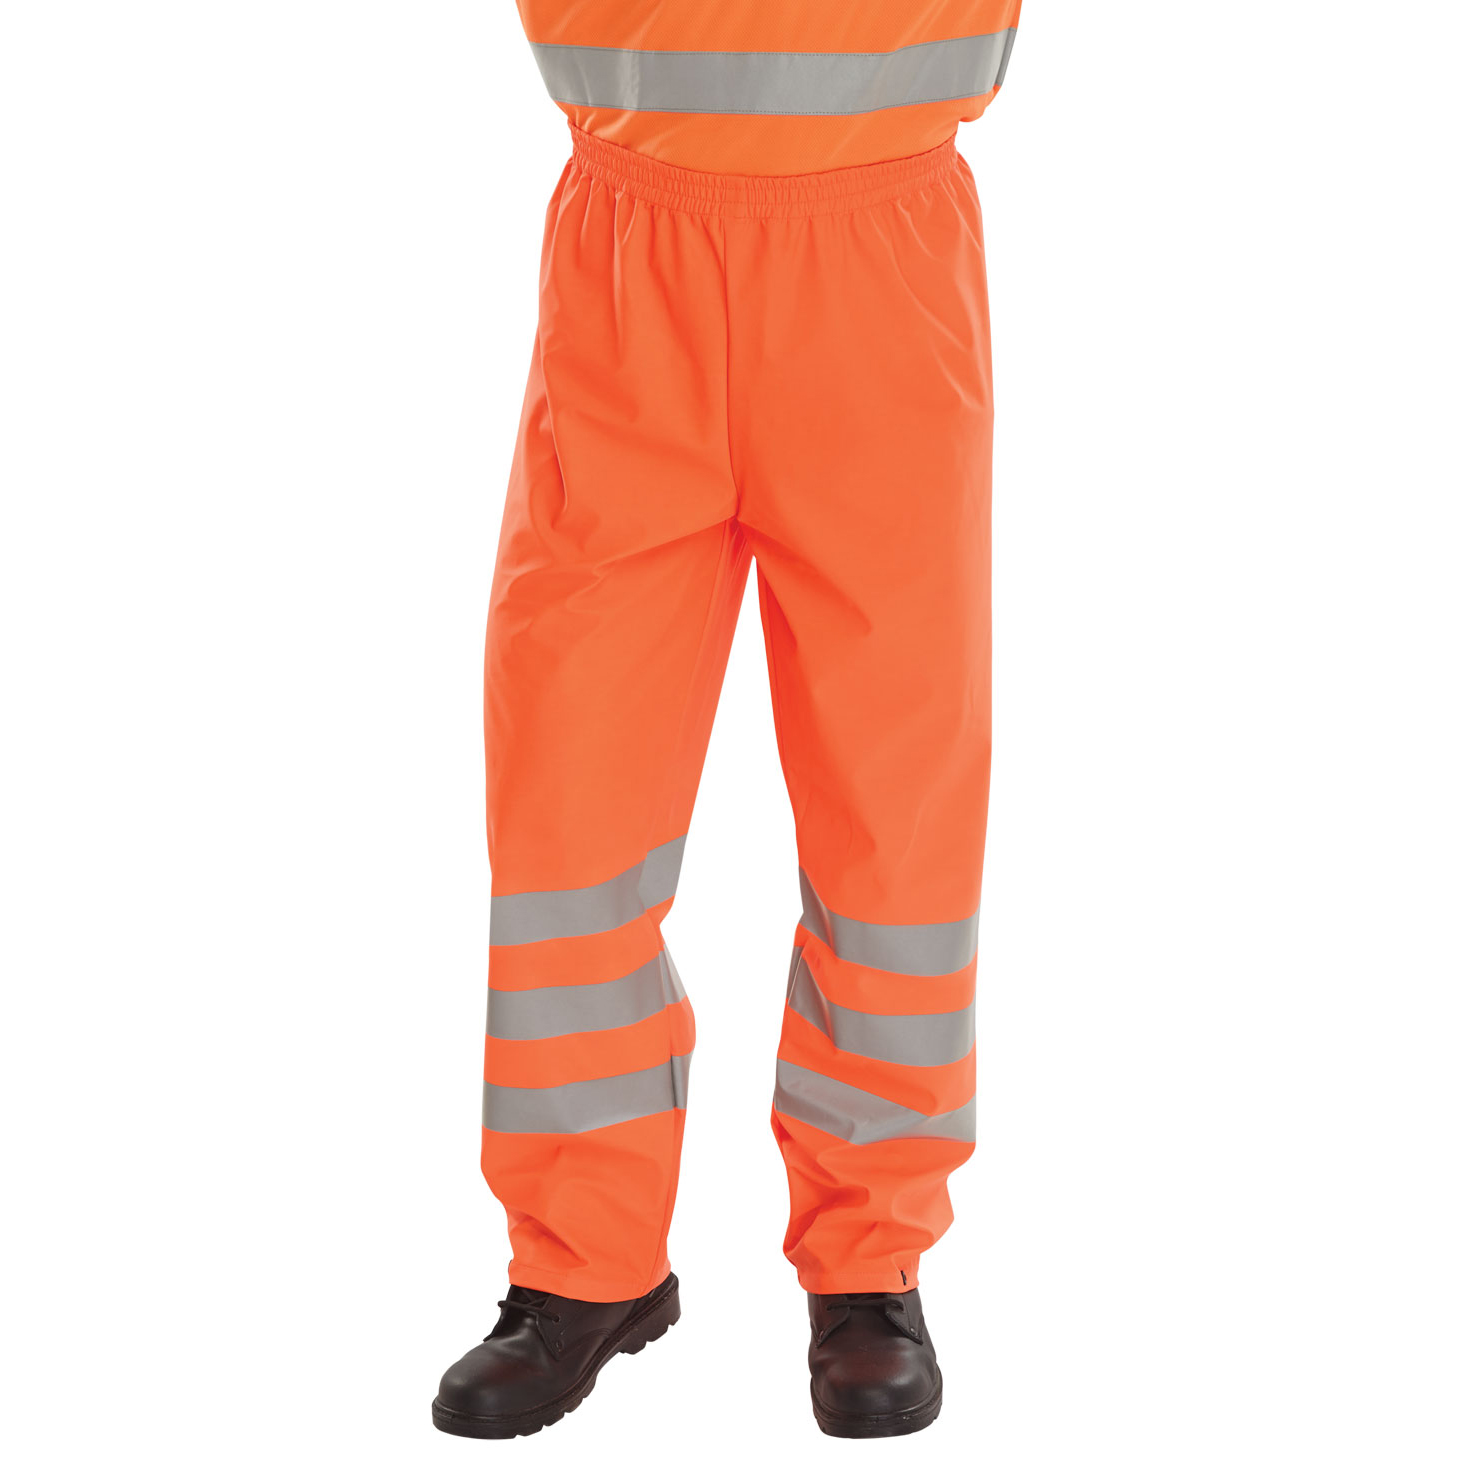 BSeen Over Trousers PU Hi-Vis Reflective 4XL Orange Ref PUT471OR4XL Up to 3 Day Leadtime